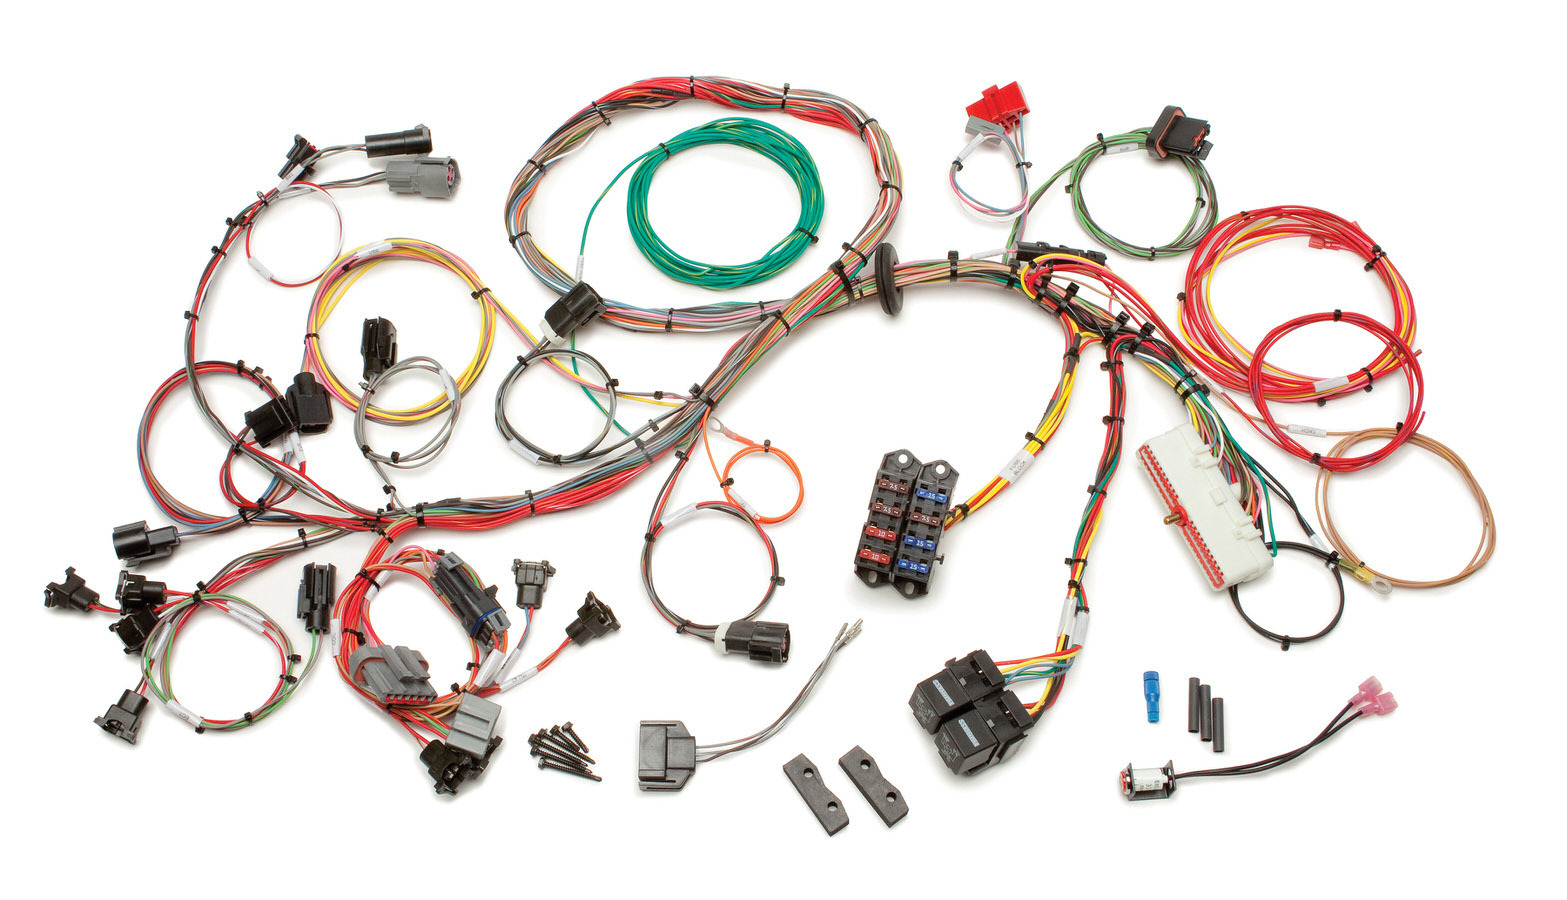 Painless Wiring 60511 EFI Wiring Harness, Extra Length, 5.0 L, Small Block Ford 1986-95, Kit